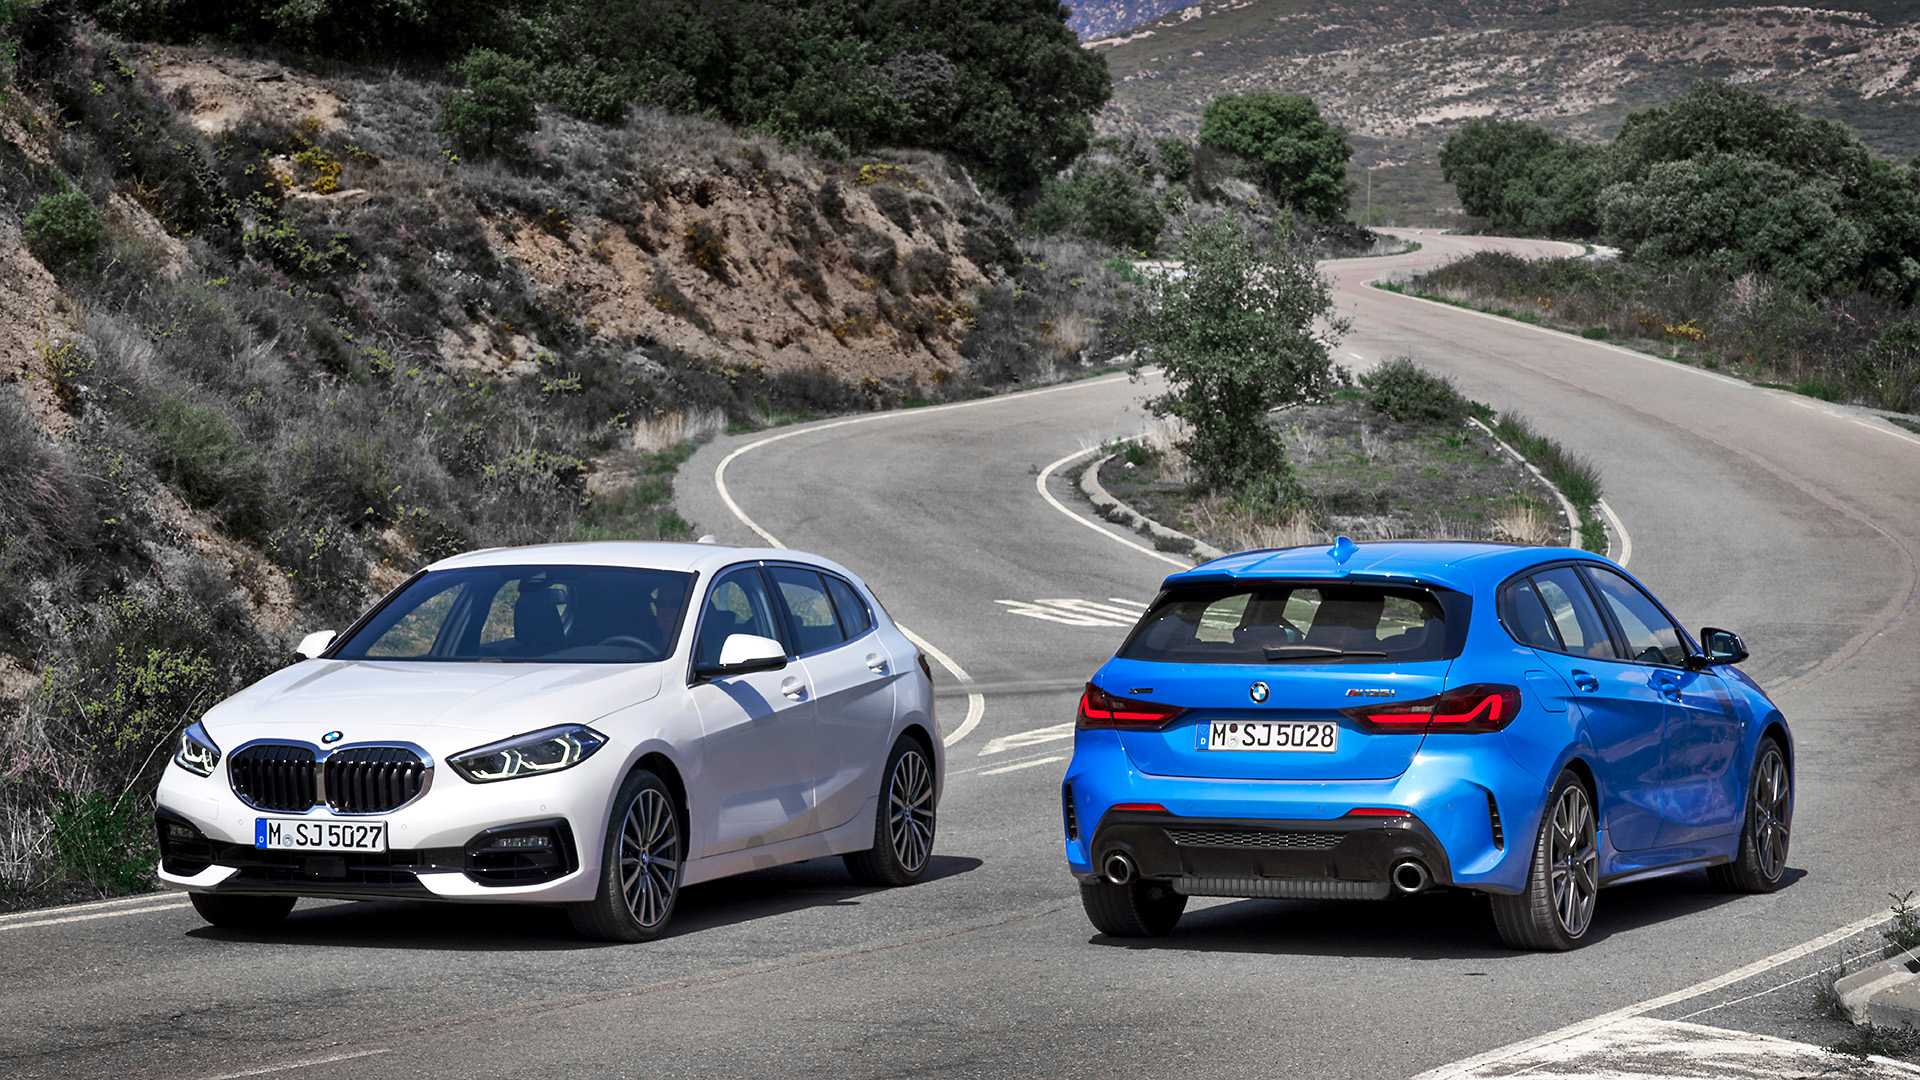 2020 BMW 1 Series Hatchback Pricing Info: It's More Expensive Than